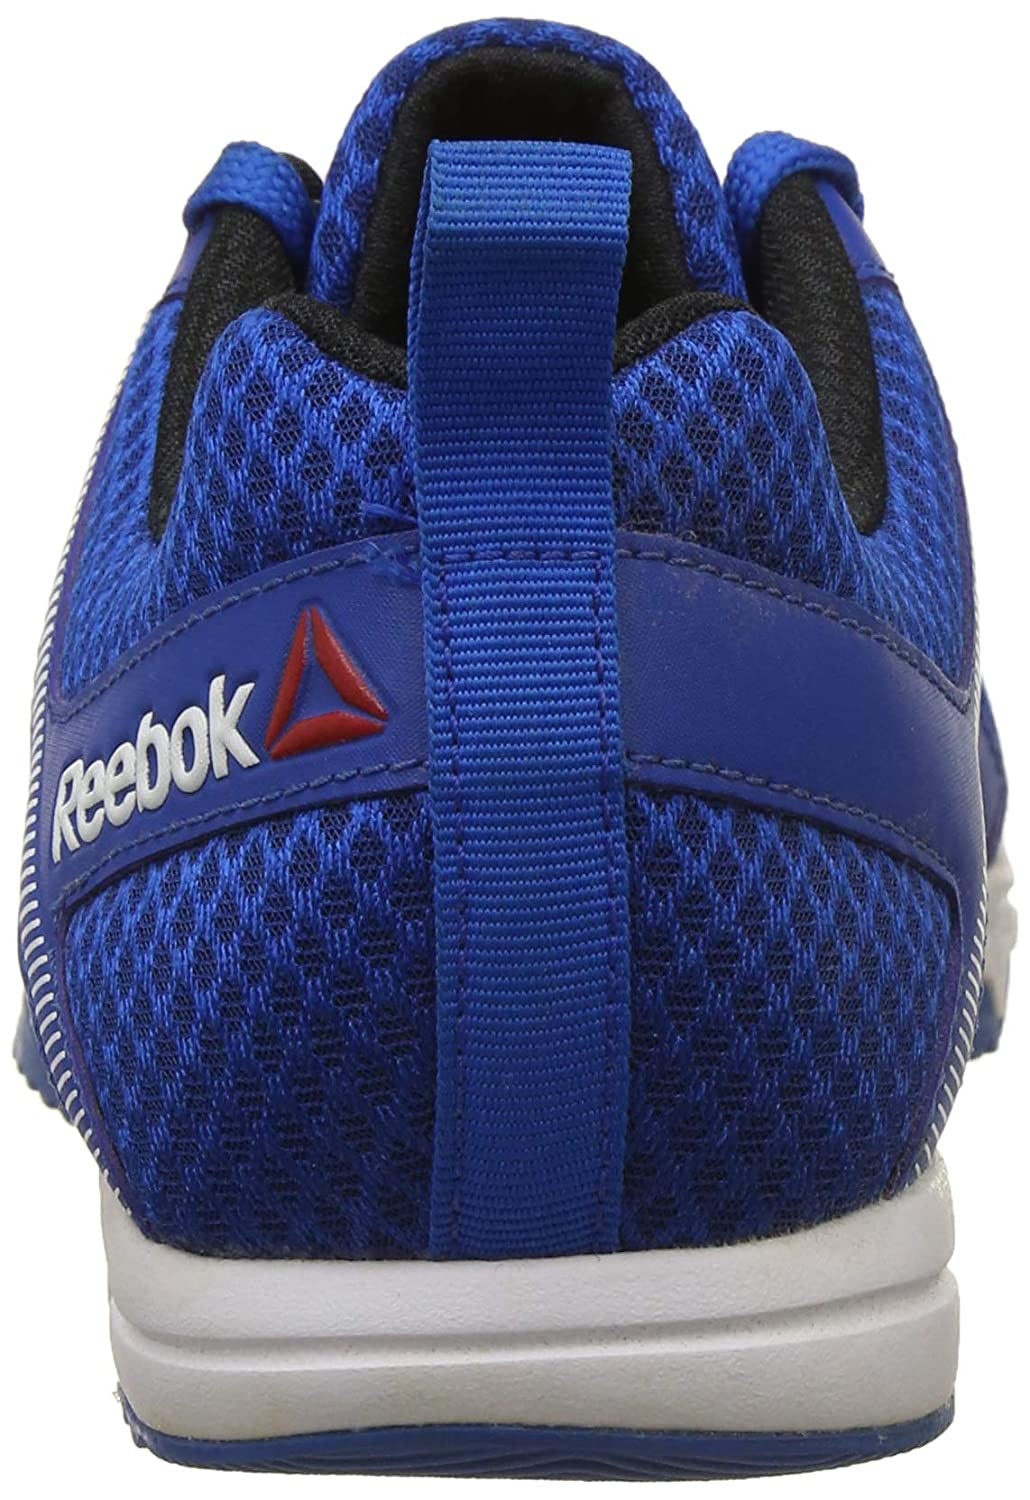 97204691583d3b Reebok Men s Blue Gravel Running Shoes - 8 UK India (42 EU)(9 US) (BD4090)  Buy  Online at Low Prices in India - Amazon.in